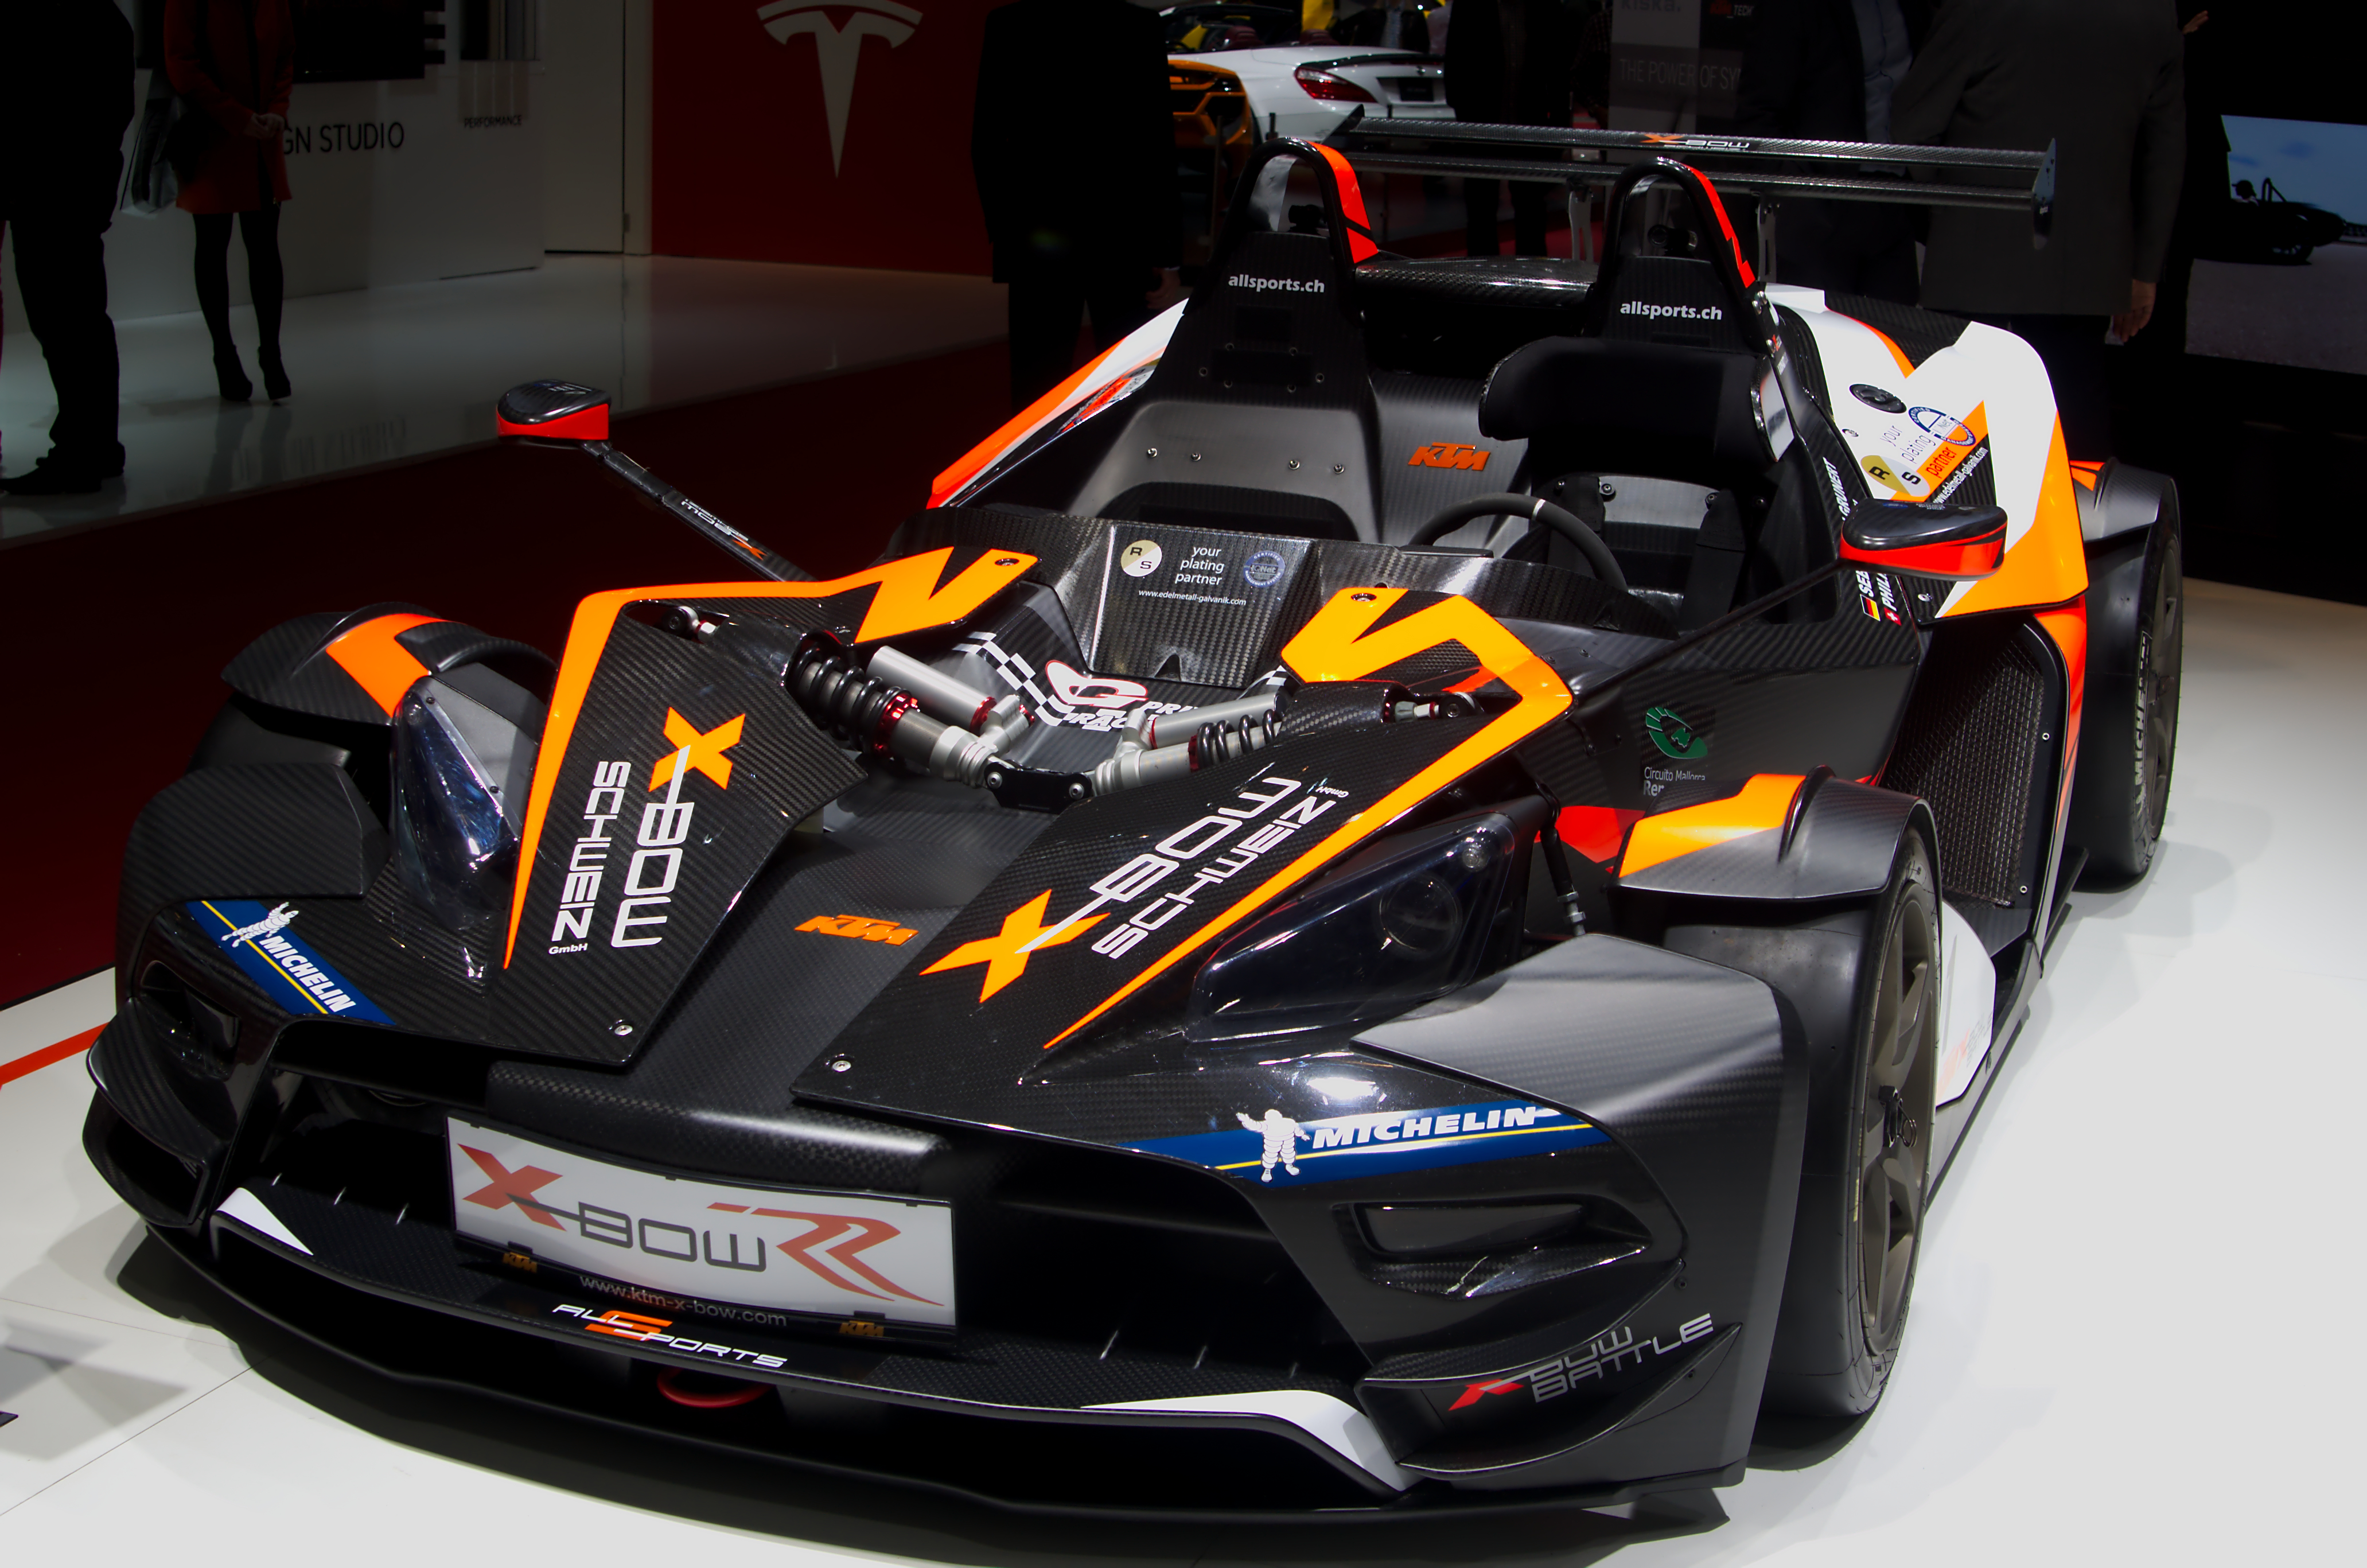 file geneva motorshow 2013 ktm x bow wikimedia. Black Bedroom Furniture Sets. Home Design Ideas